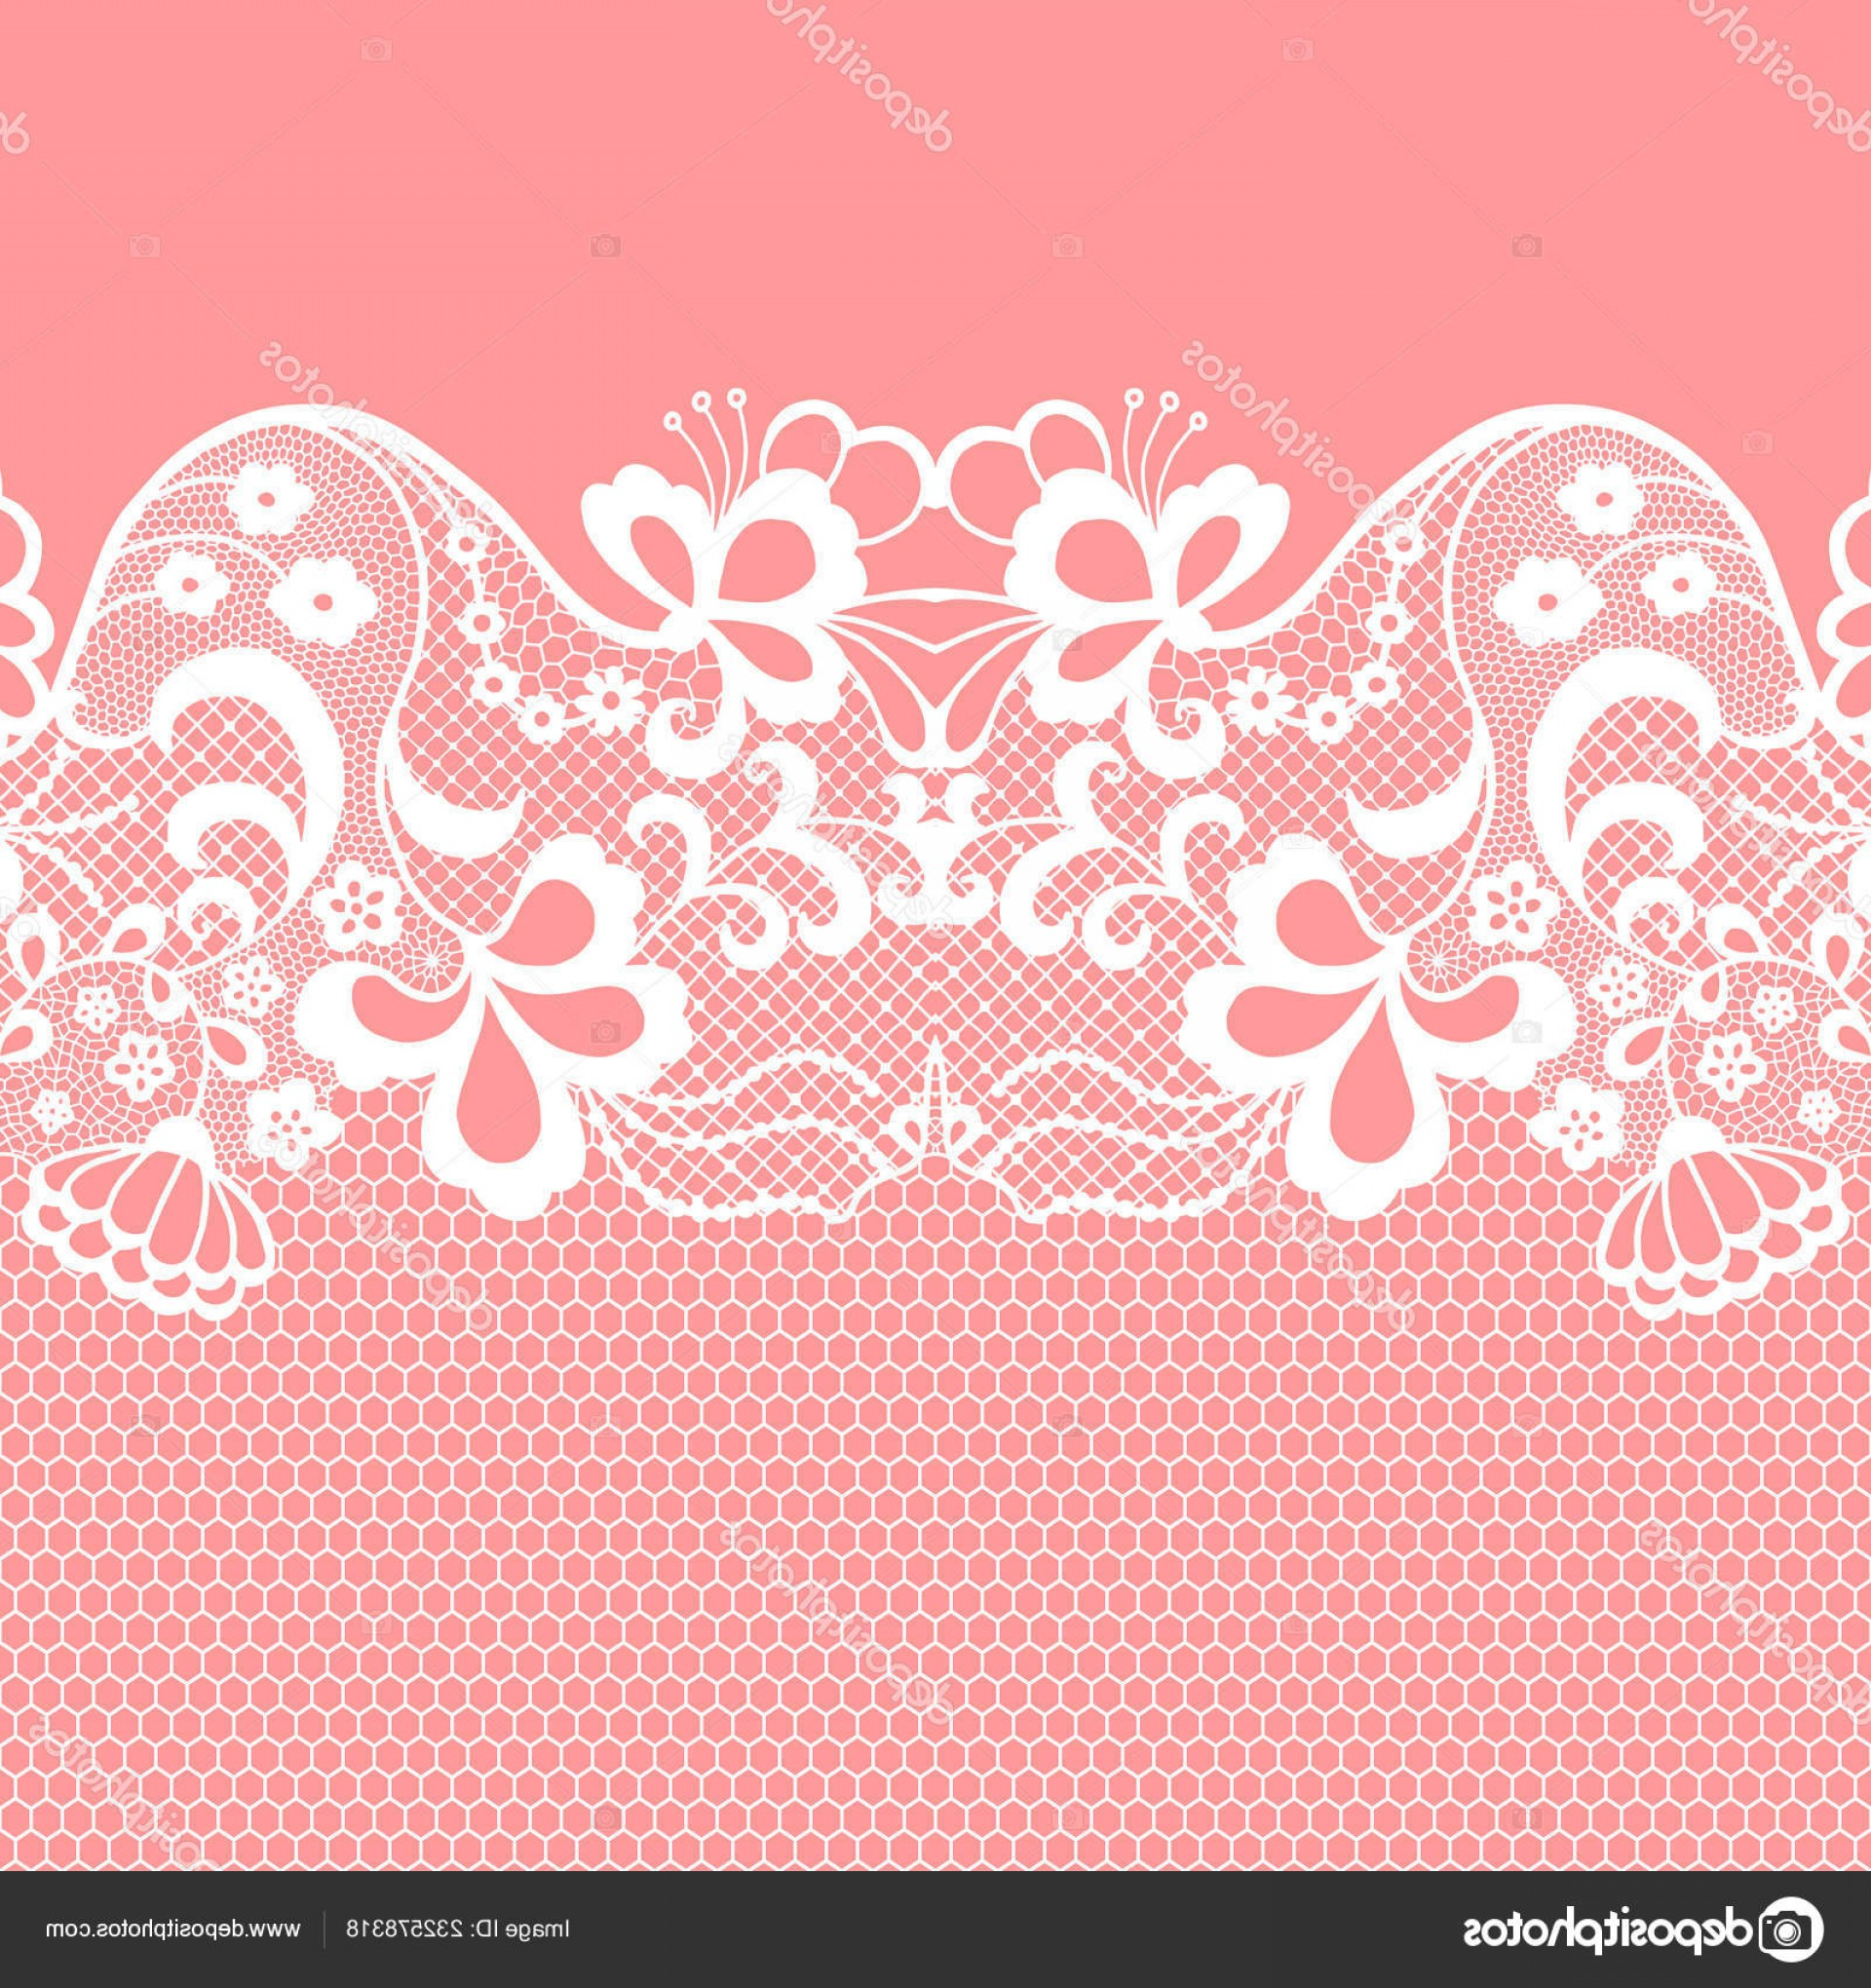 Vector Can Trim White: Stock Illustration Seamless Lace Border Vector Illustration